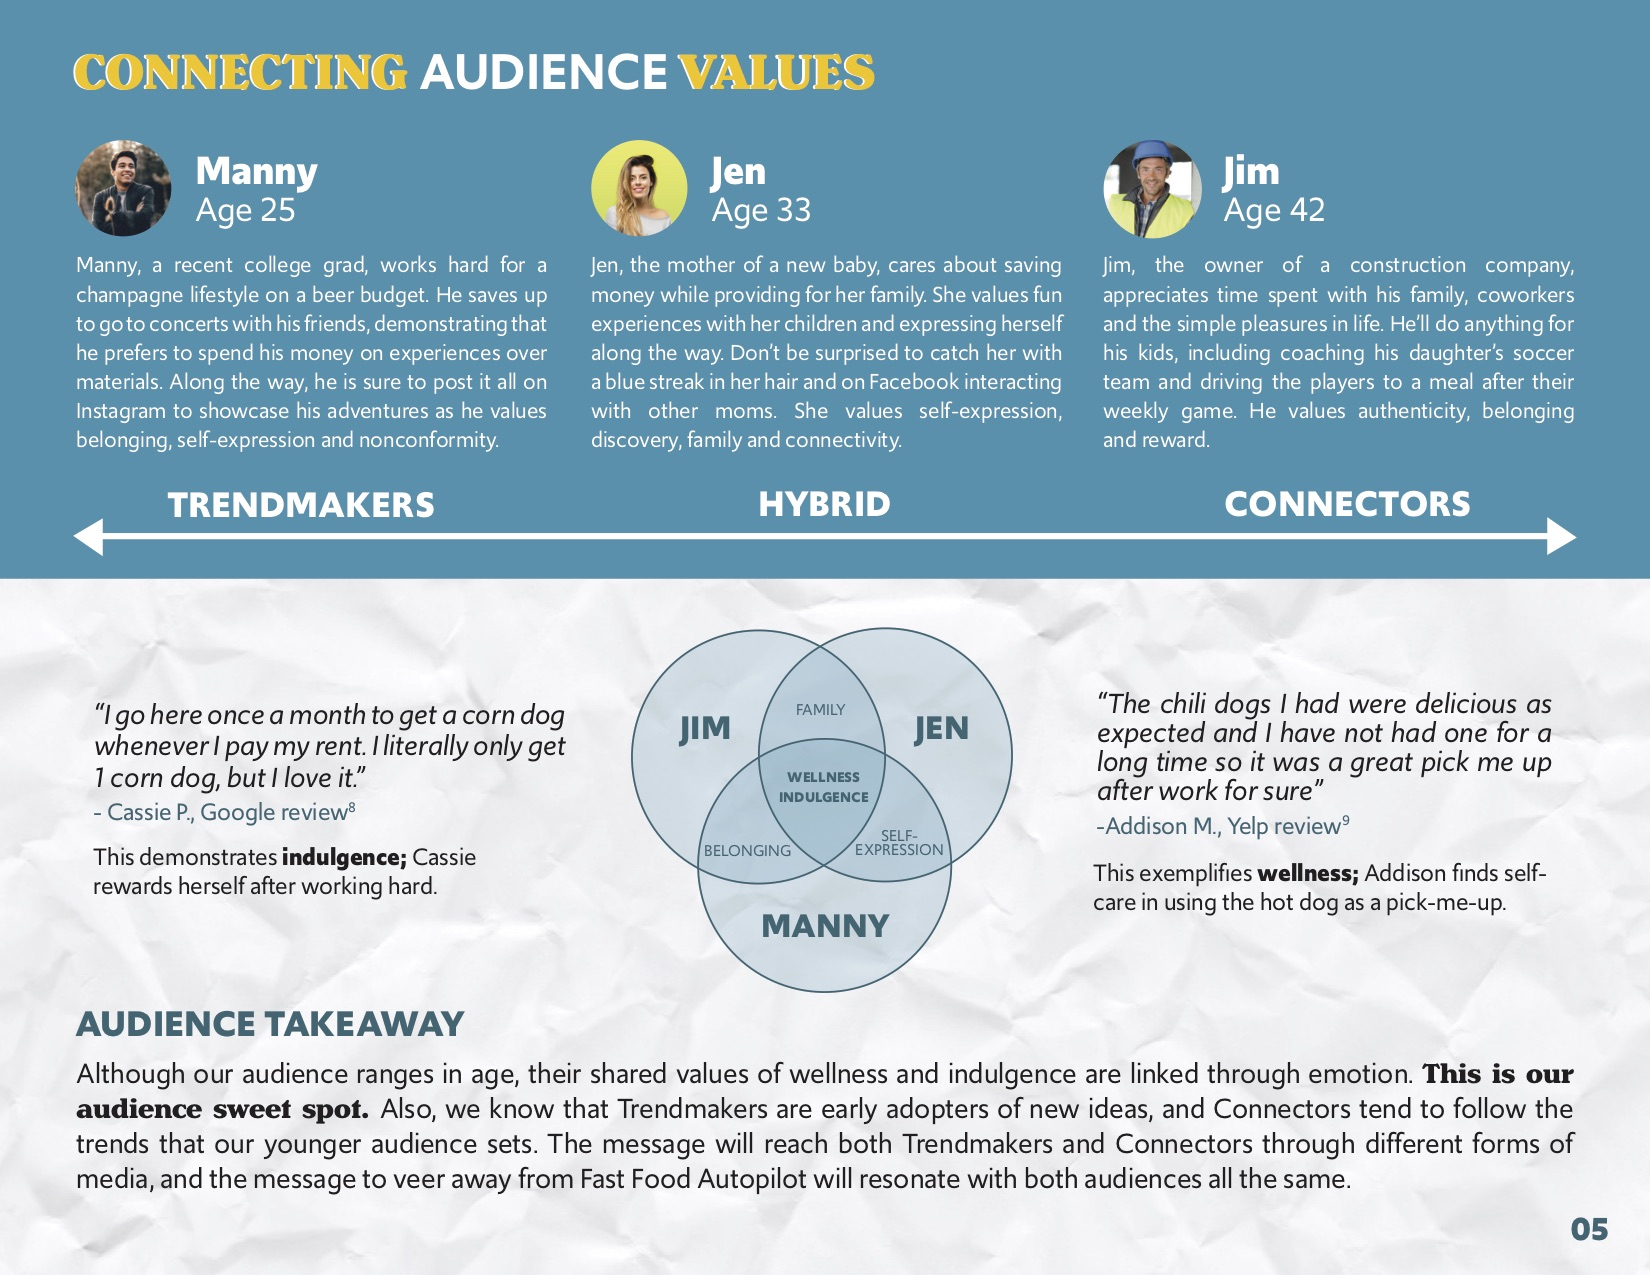 Like any successful campaign, we had to take a deep dive into who our audience truly is. We used demographic and psychographic evaluations along with qualitative and quantitative data to determine what our most penetrable audience would be, and how we would be able to reach them most successfully. This resulted in us finding our Audience Sweet Spot. My role in this was creating our fictional personas, focus grouping, pulling examples from social listening, completing in-store observations, and creeping on strangers buying hot dogs at grocery stores.